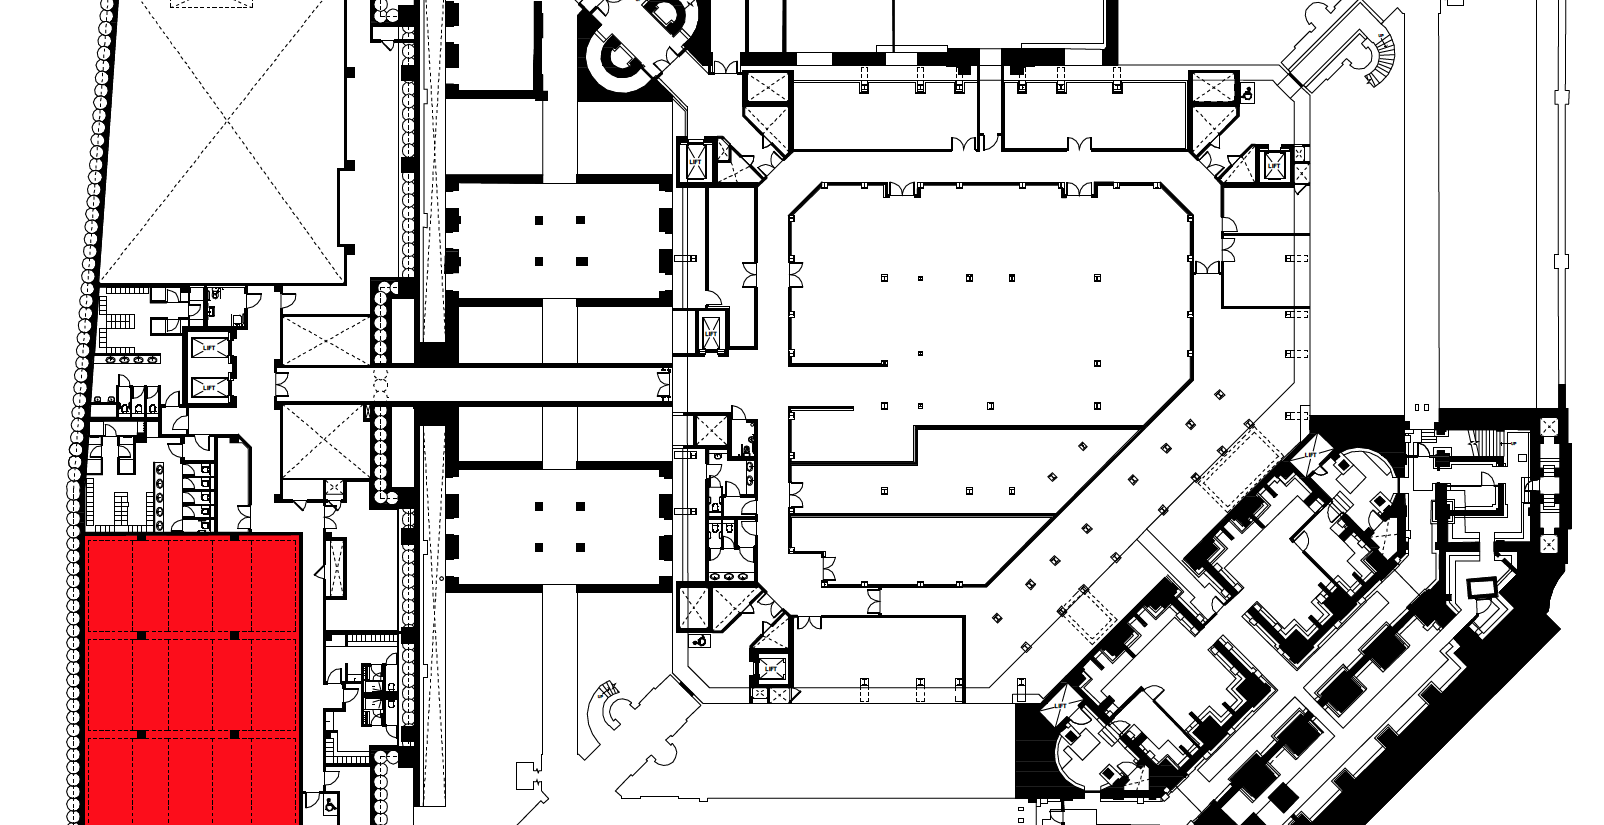 Land Registry Lease Plan 10 Trinity Square Lease Plans